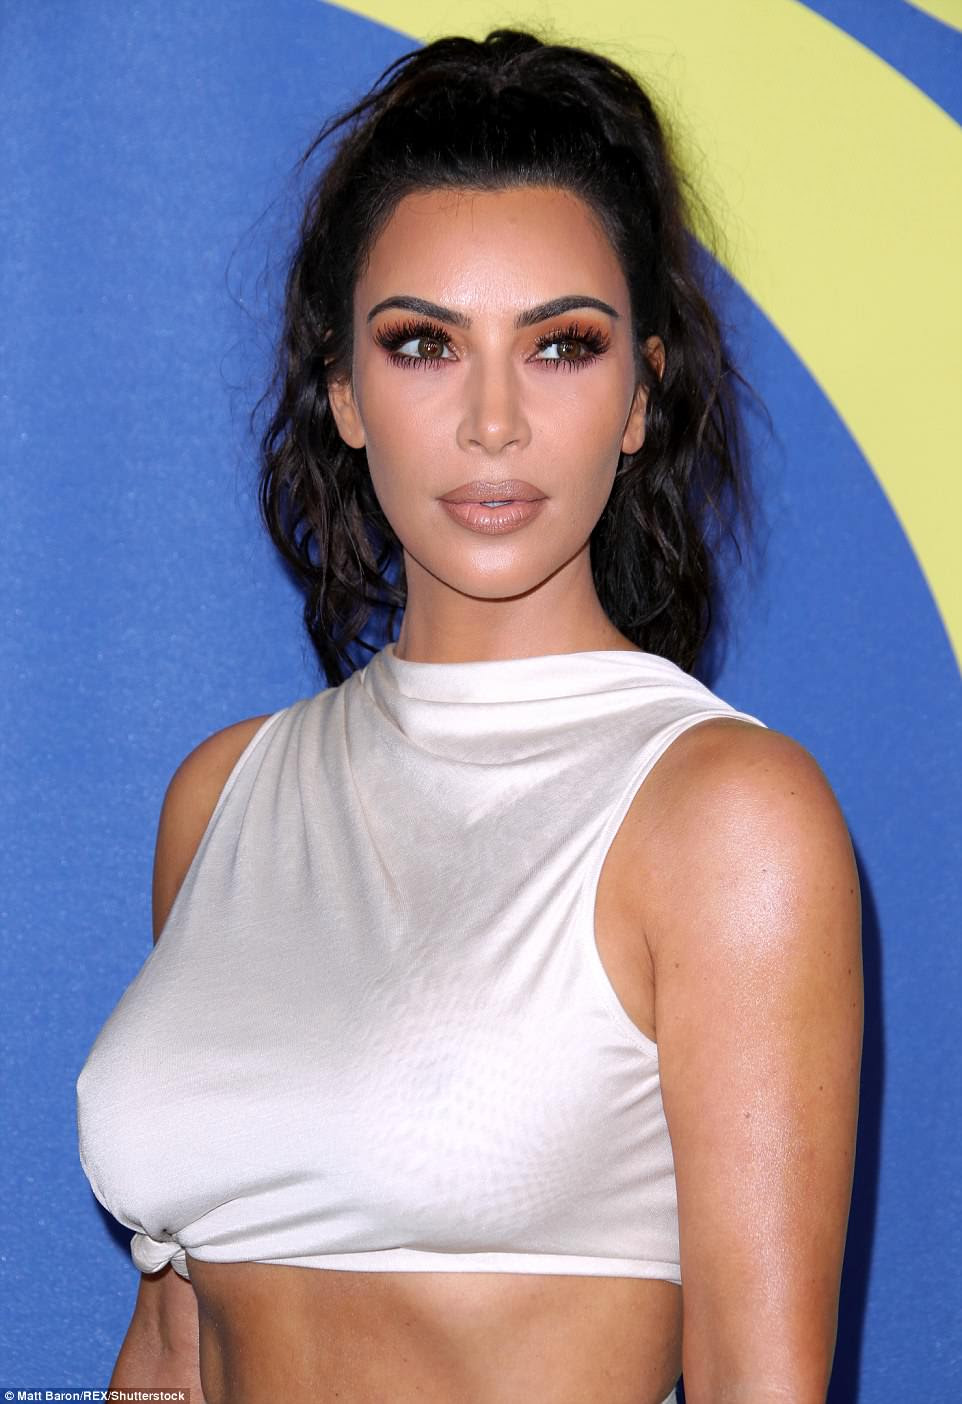 Bronze beauty: The KUWTK star was flawless with her long locks pulled up into a ponytail and showing off a bronze makeup look